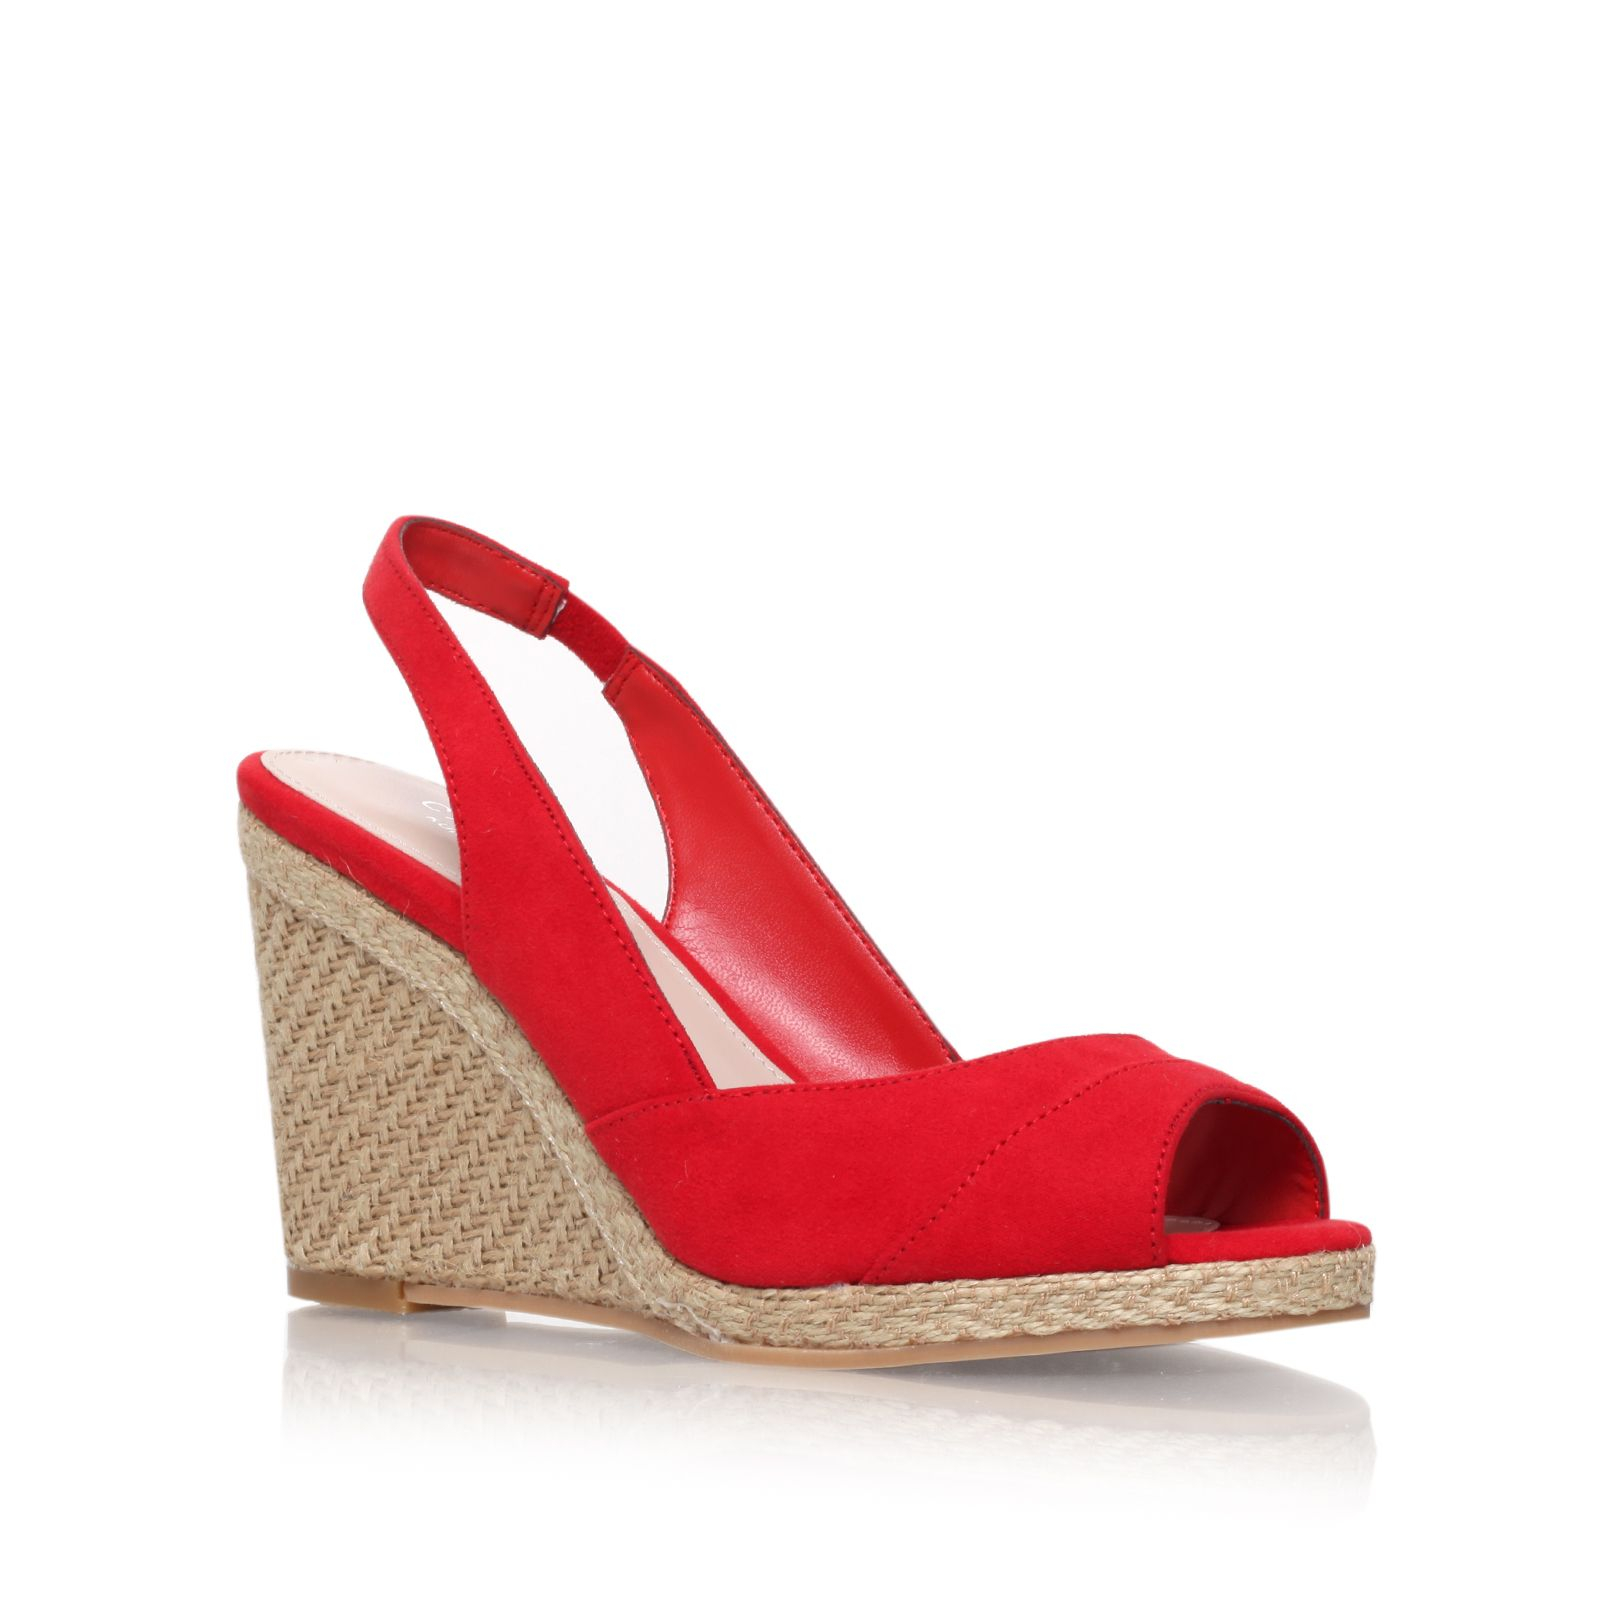 How Do I Wear Wedge Shoes?